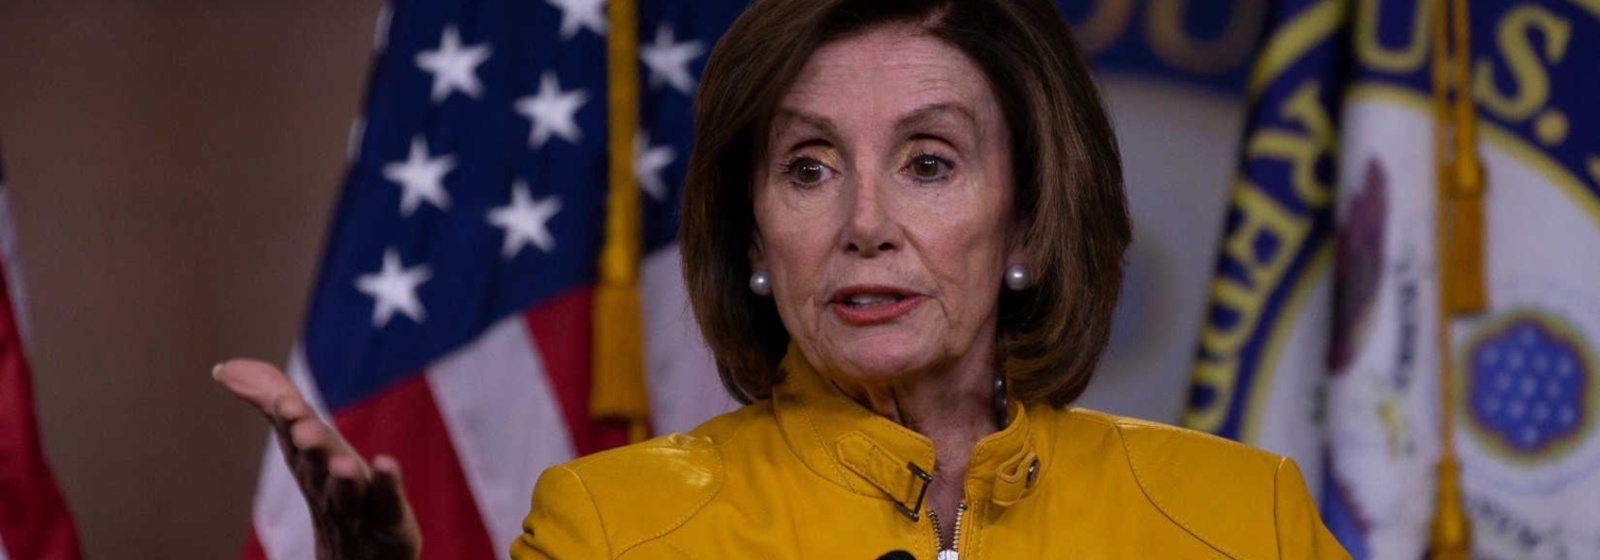 REPORT: Nancy Pelosi's Husband Benefited from PPP Loan